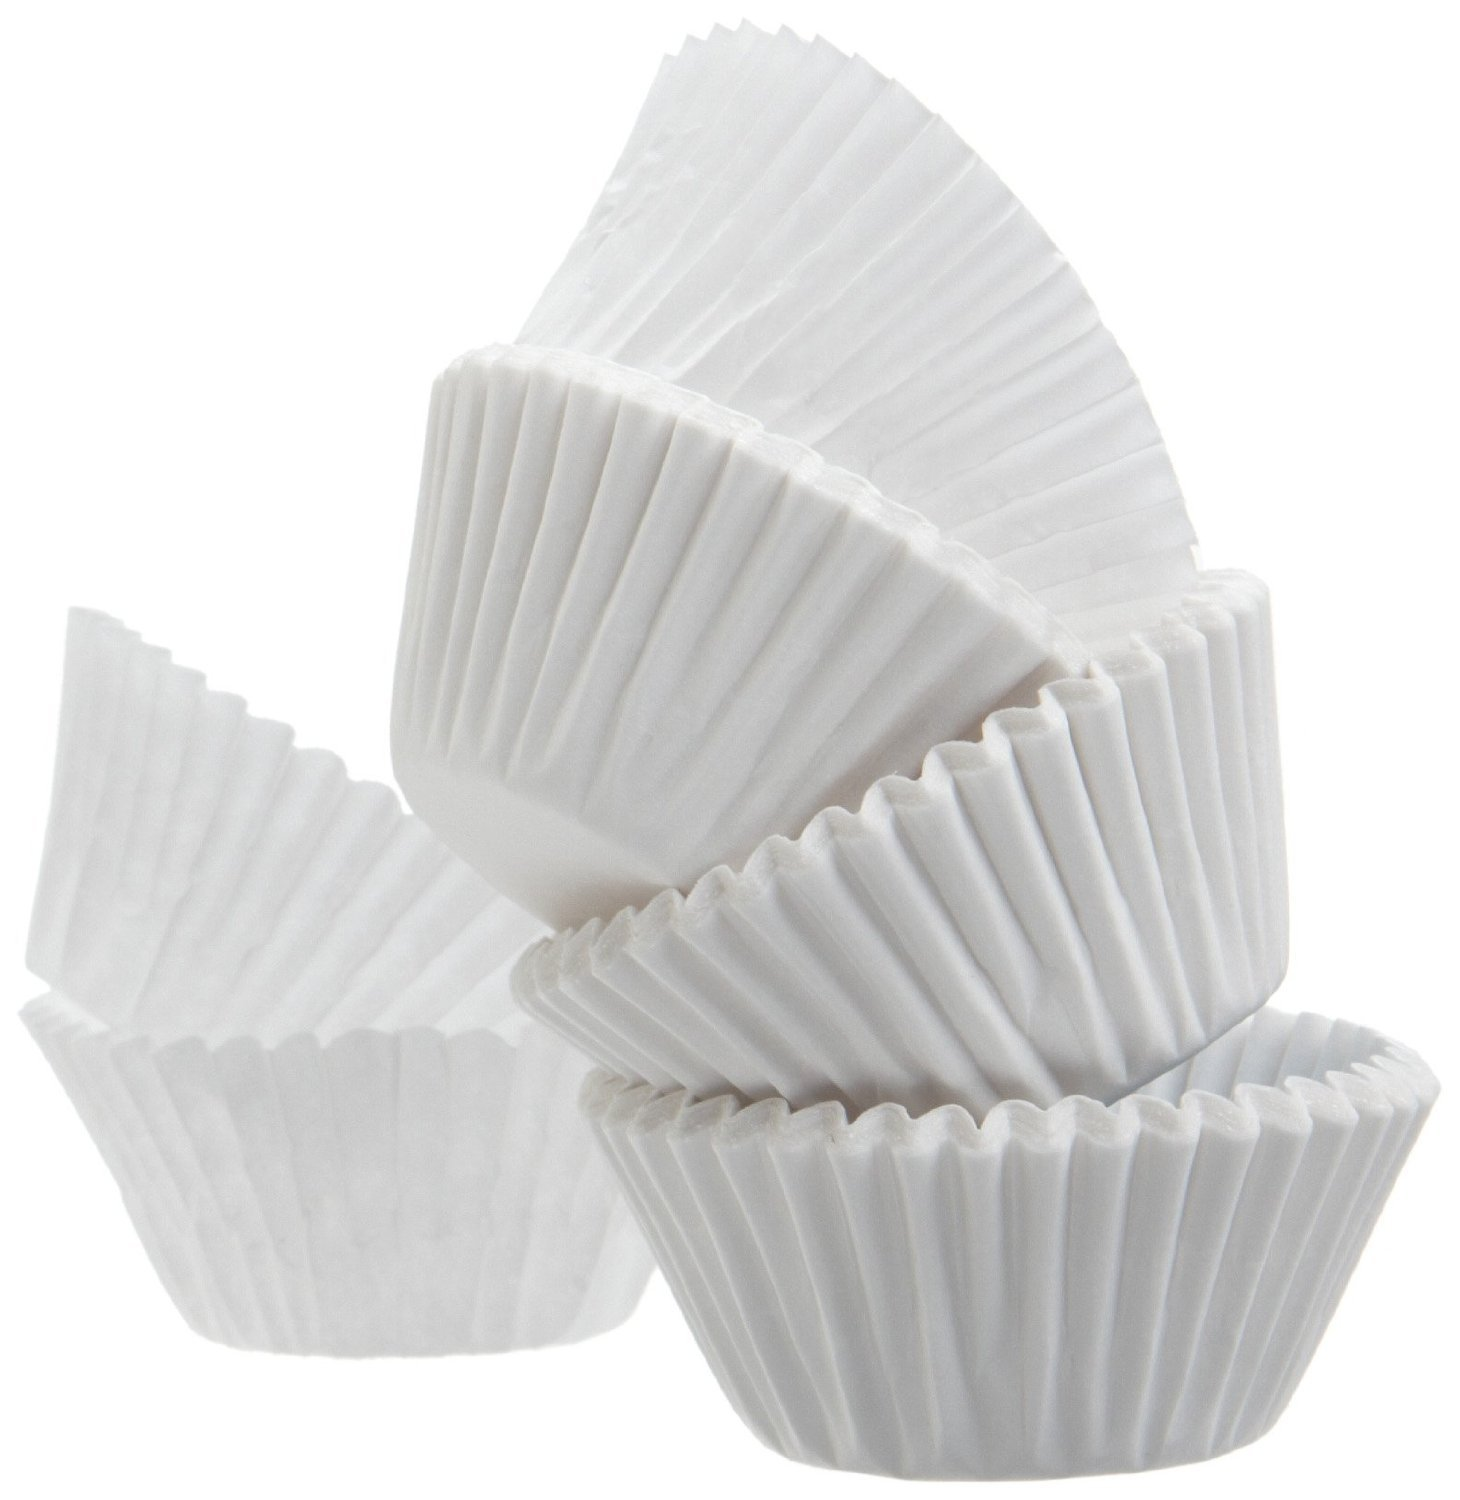 Green Direct Cupcake Liners - Standard Size Cupcake Wrappers to use for Pans or carrier or on stand - White Paper Baking Cups Pack of 500